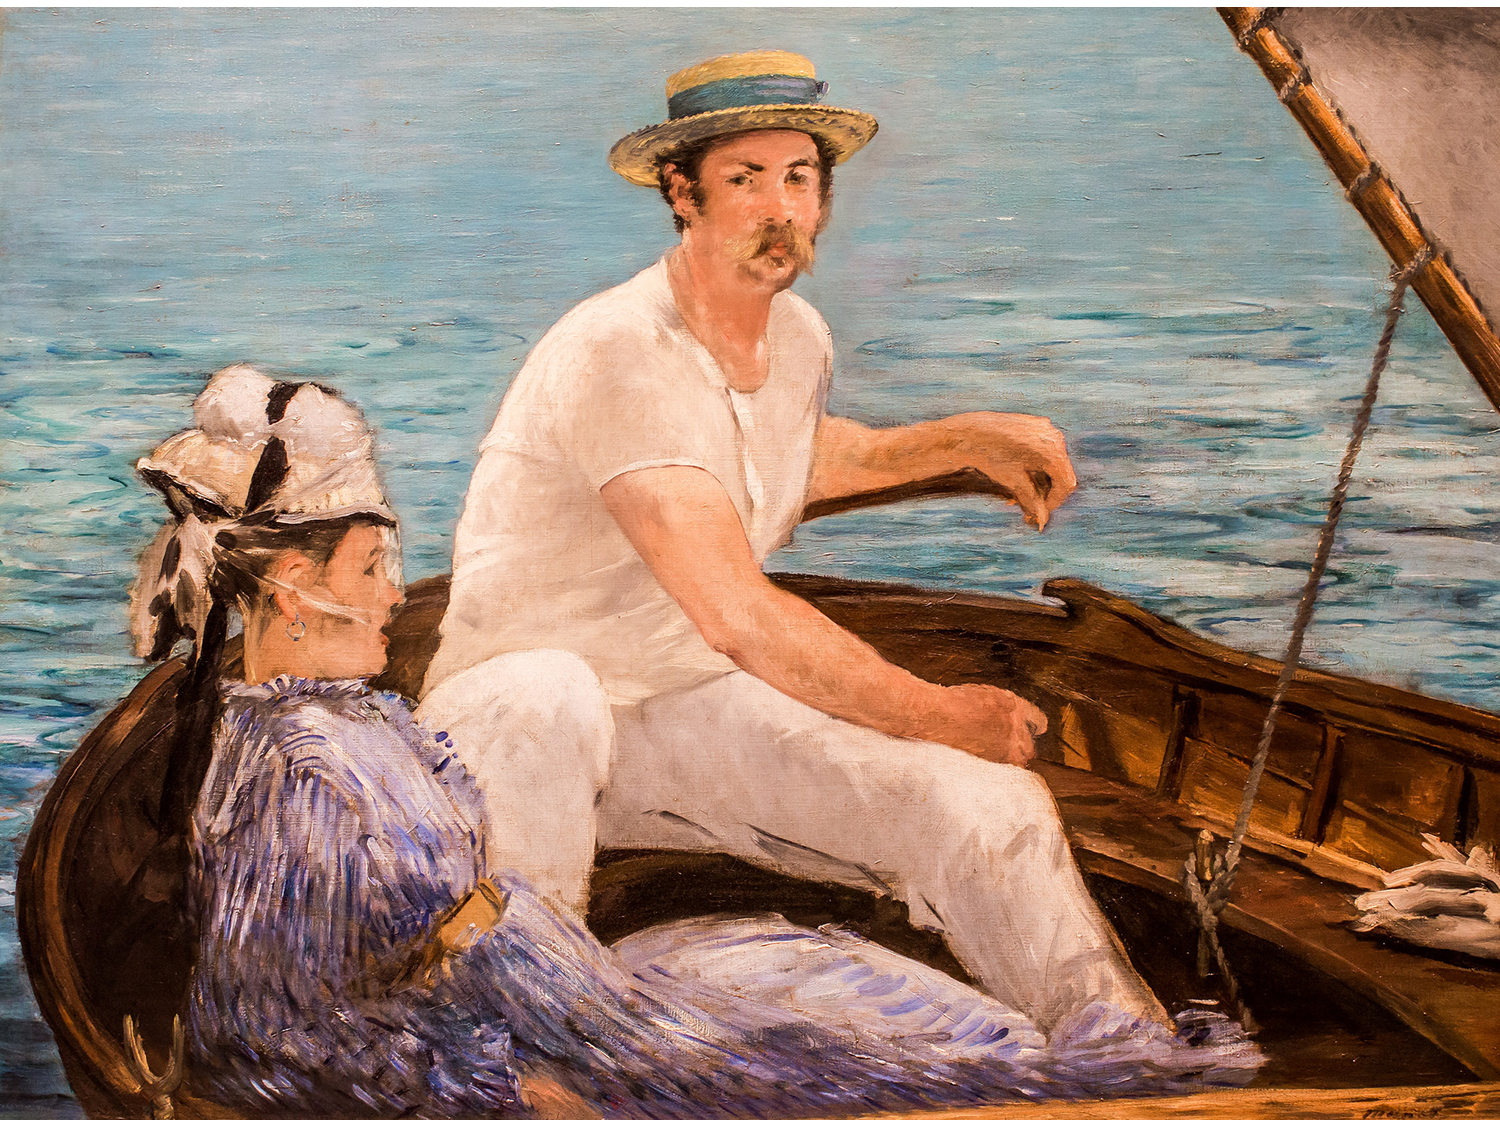 Édouard Manet, Boating, 1874